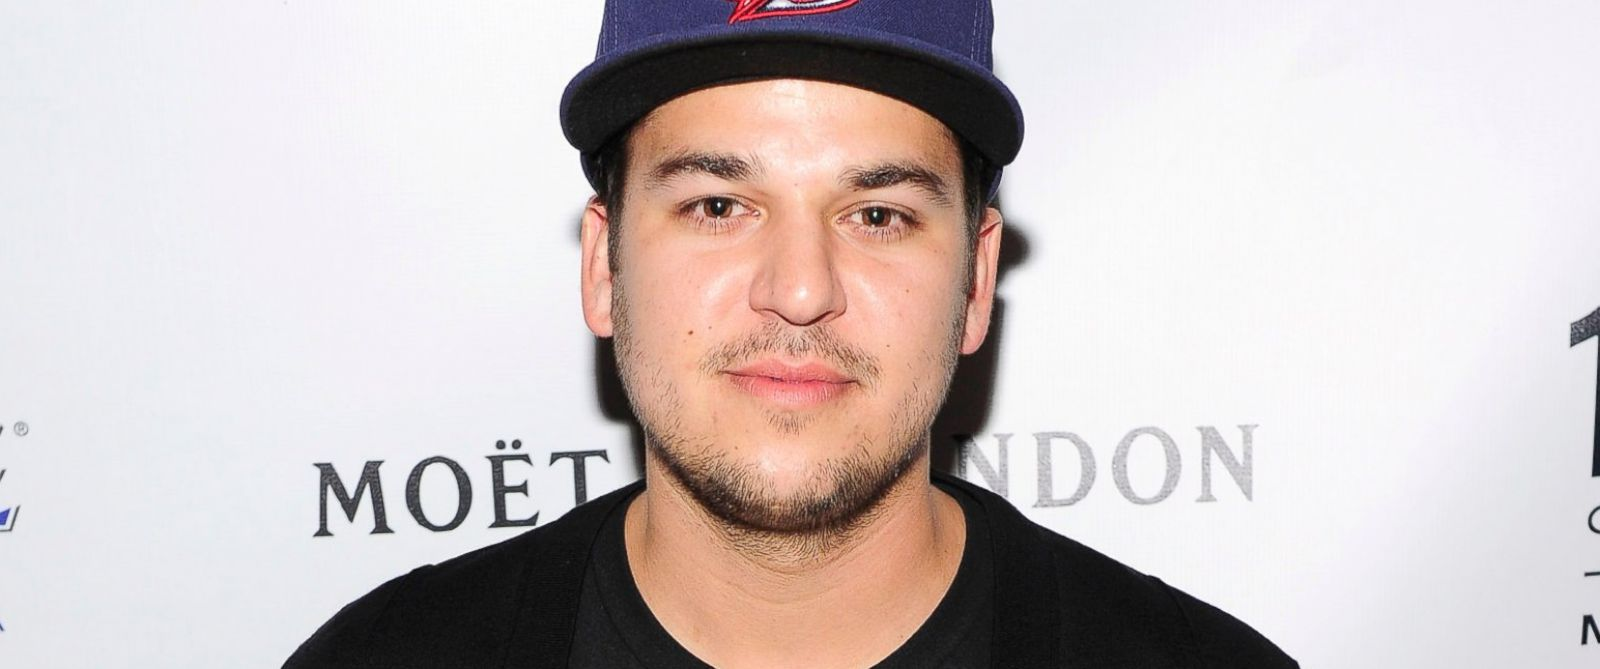 PHOTO: Rob Kardashian arrives at 1 OAK Nightclub for a Memorial Day weekend celebration, May 25, 2013, in Las Vegas.